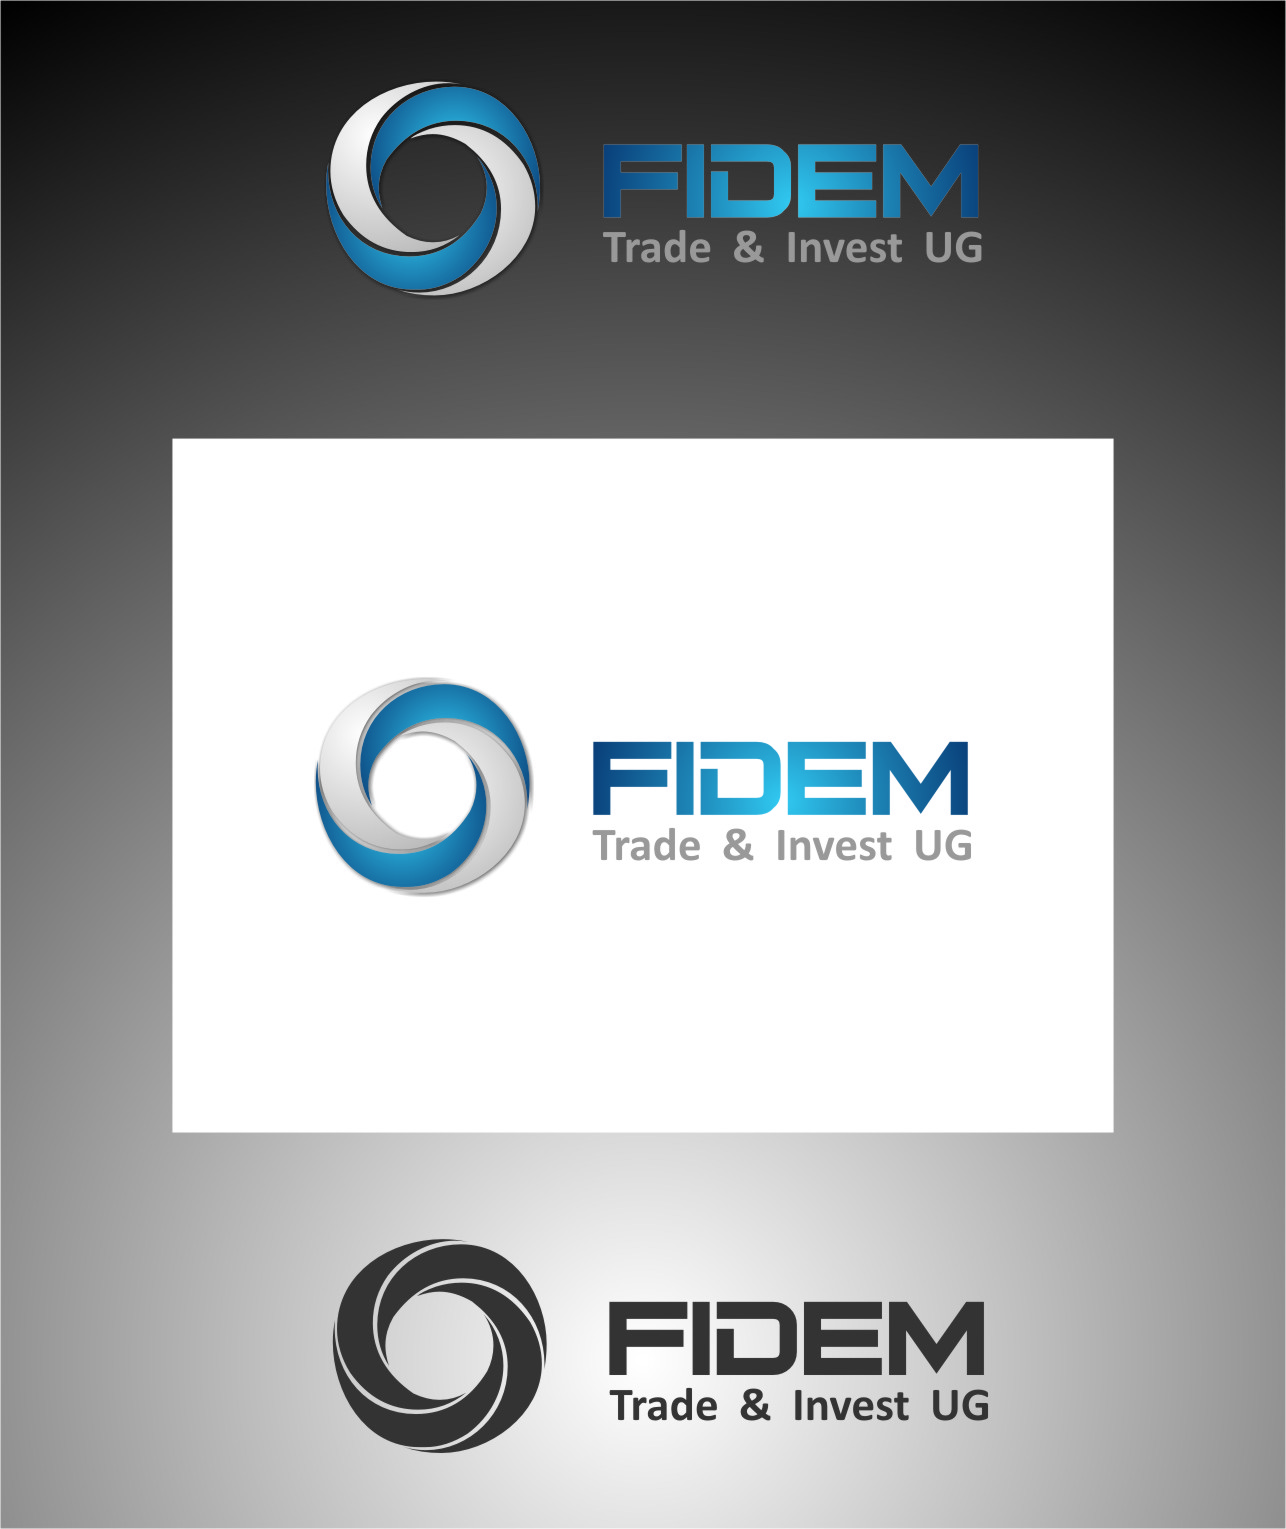 Logo Design by RasYa Muhammad Athaya - Entry No. 178 in the Logo Design Contest Professional Logo Design for FIDEM Trade & Invest UG.